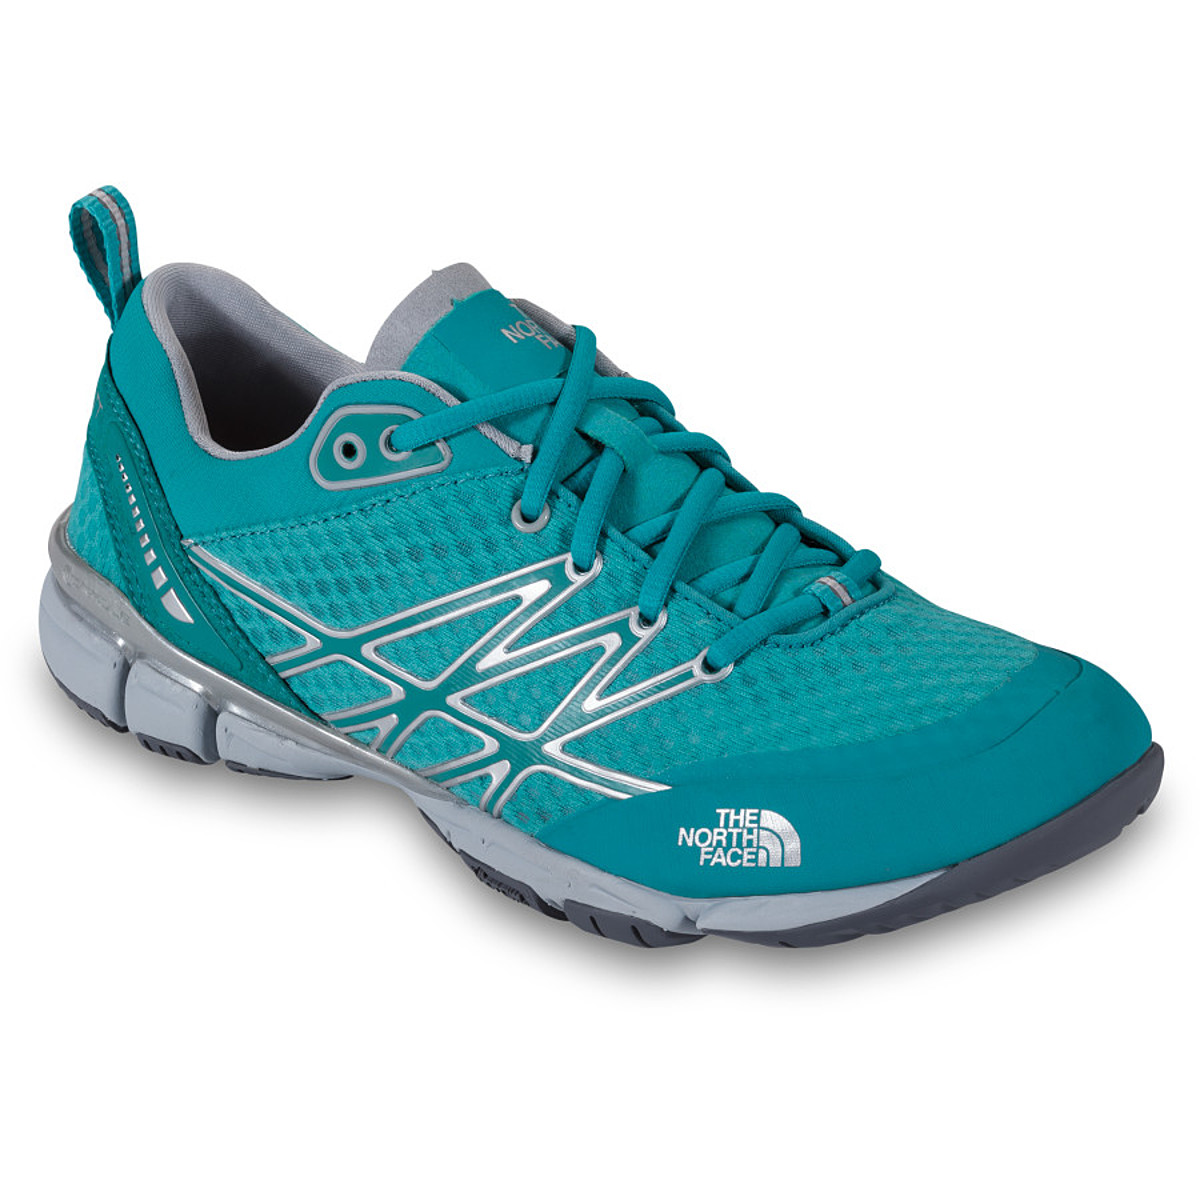 photo: The North Face Women's Ultra Kilowatt barefoot / minimal shoe